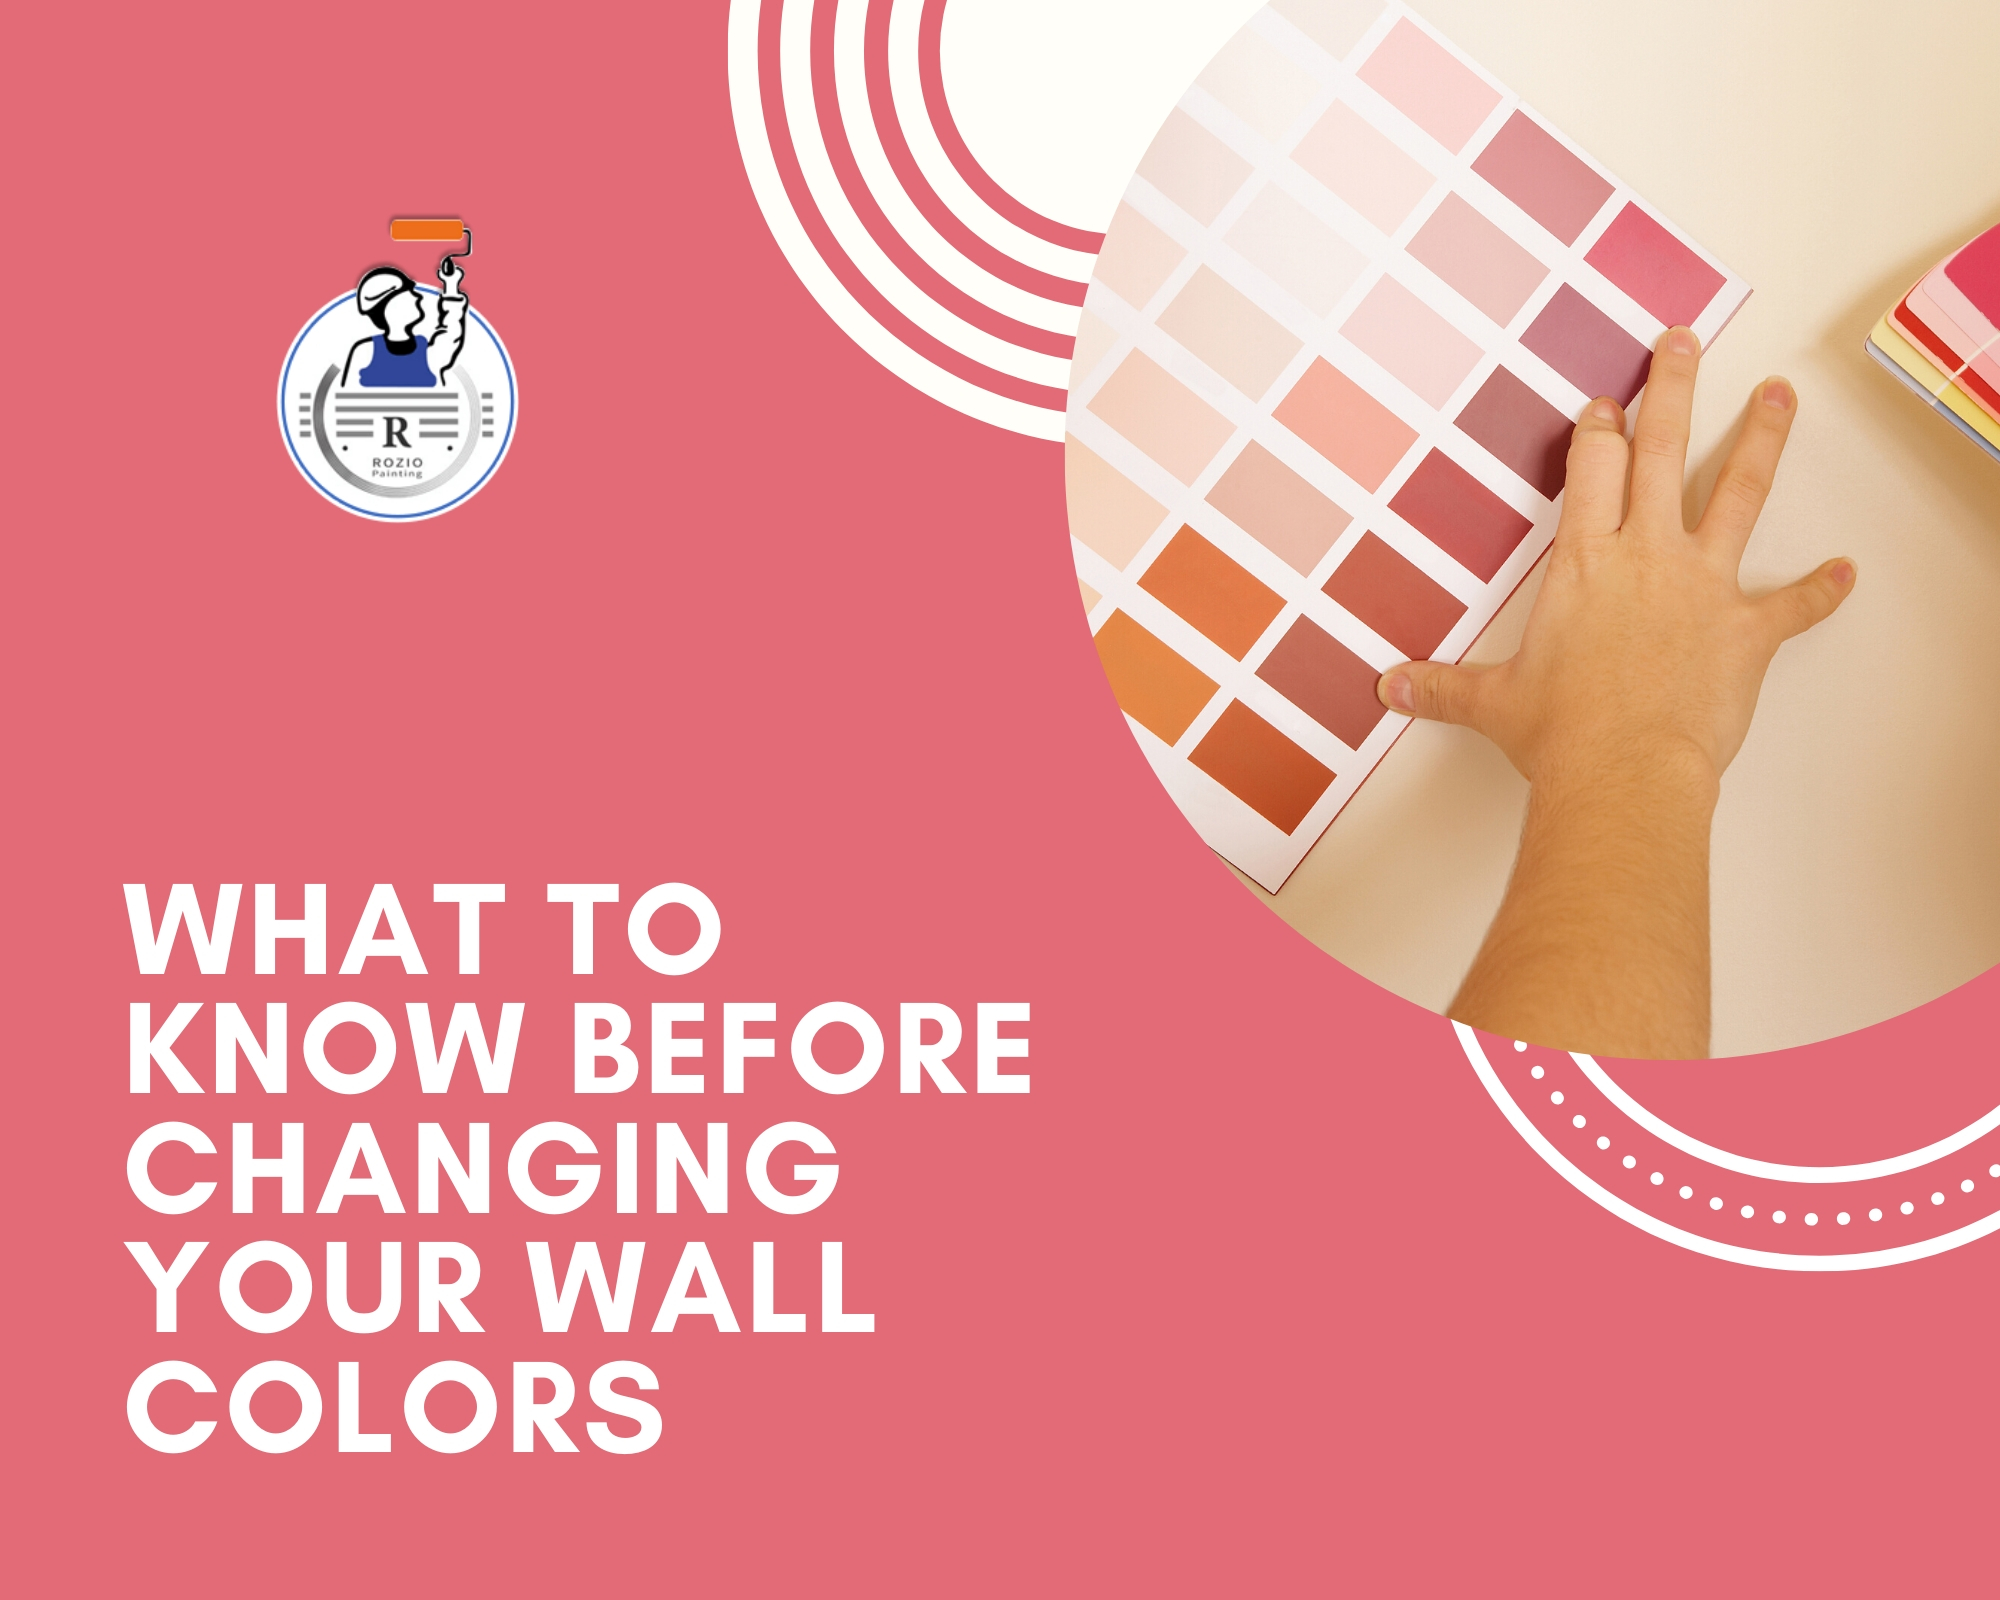 What to know before changing the colors of your wall